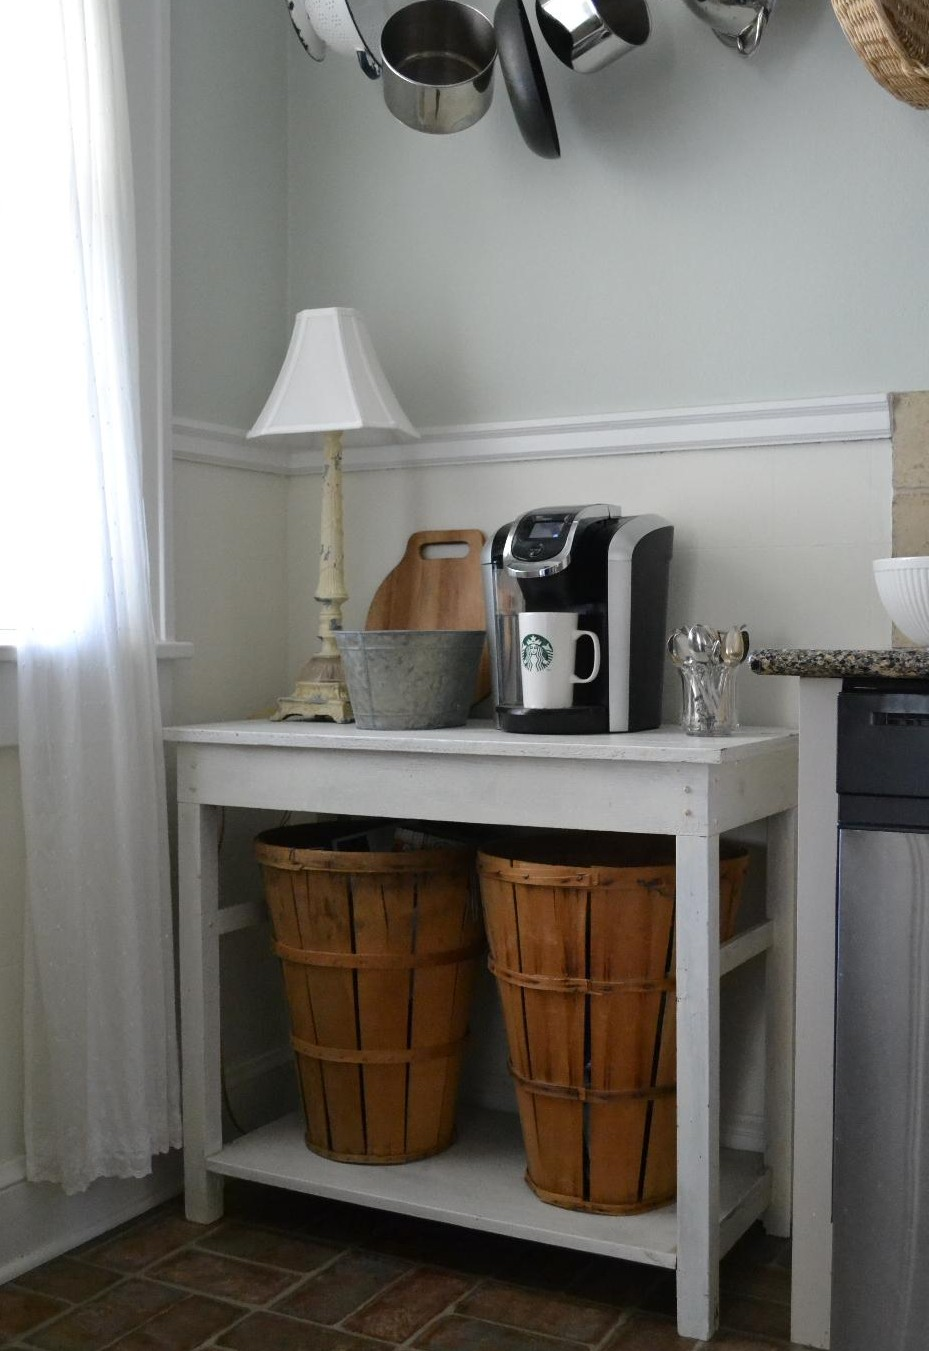 Cottage Fix blog - kitchen coffee station with rustic crate basket storage